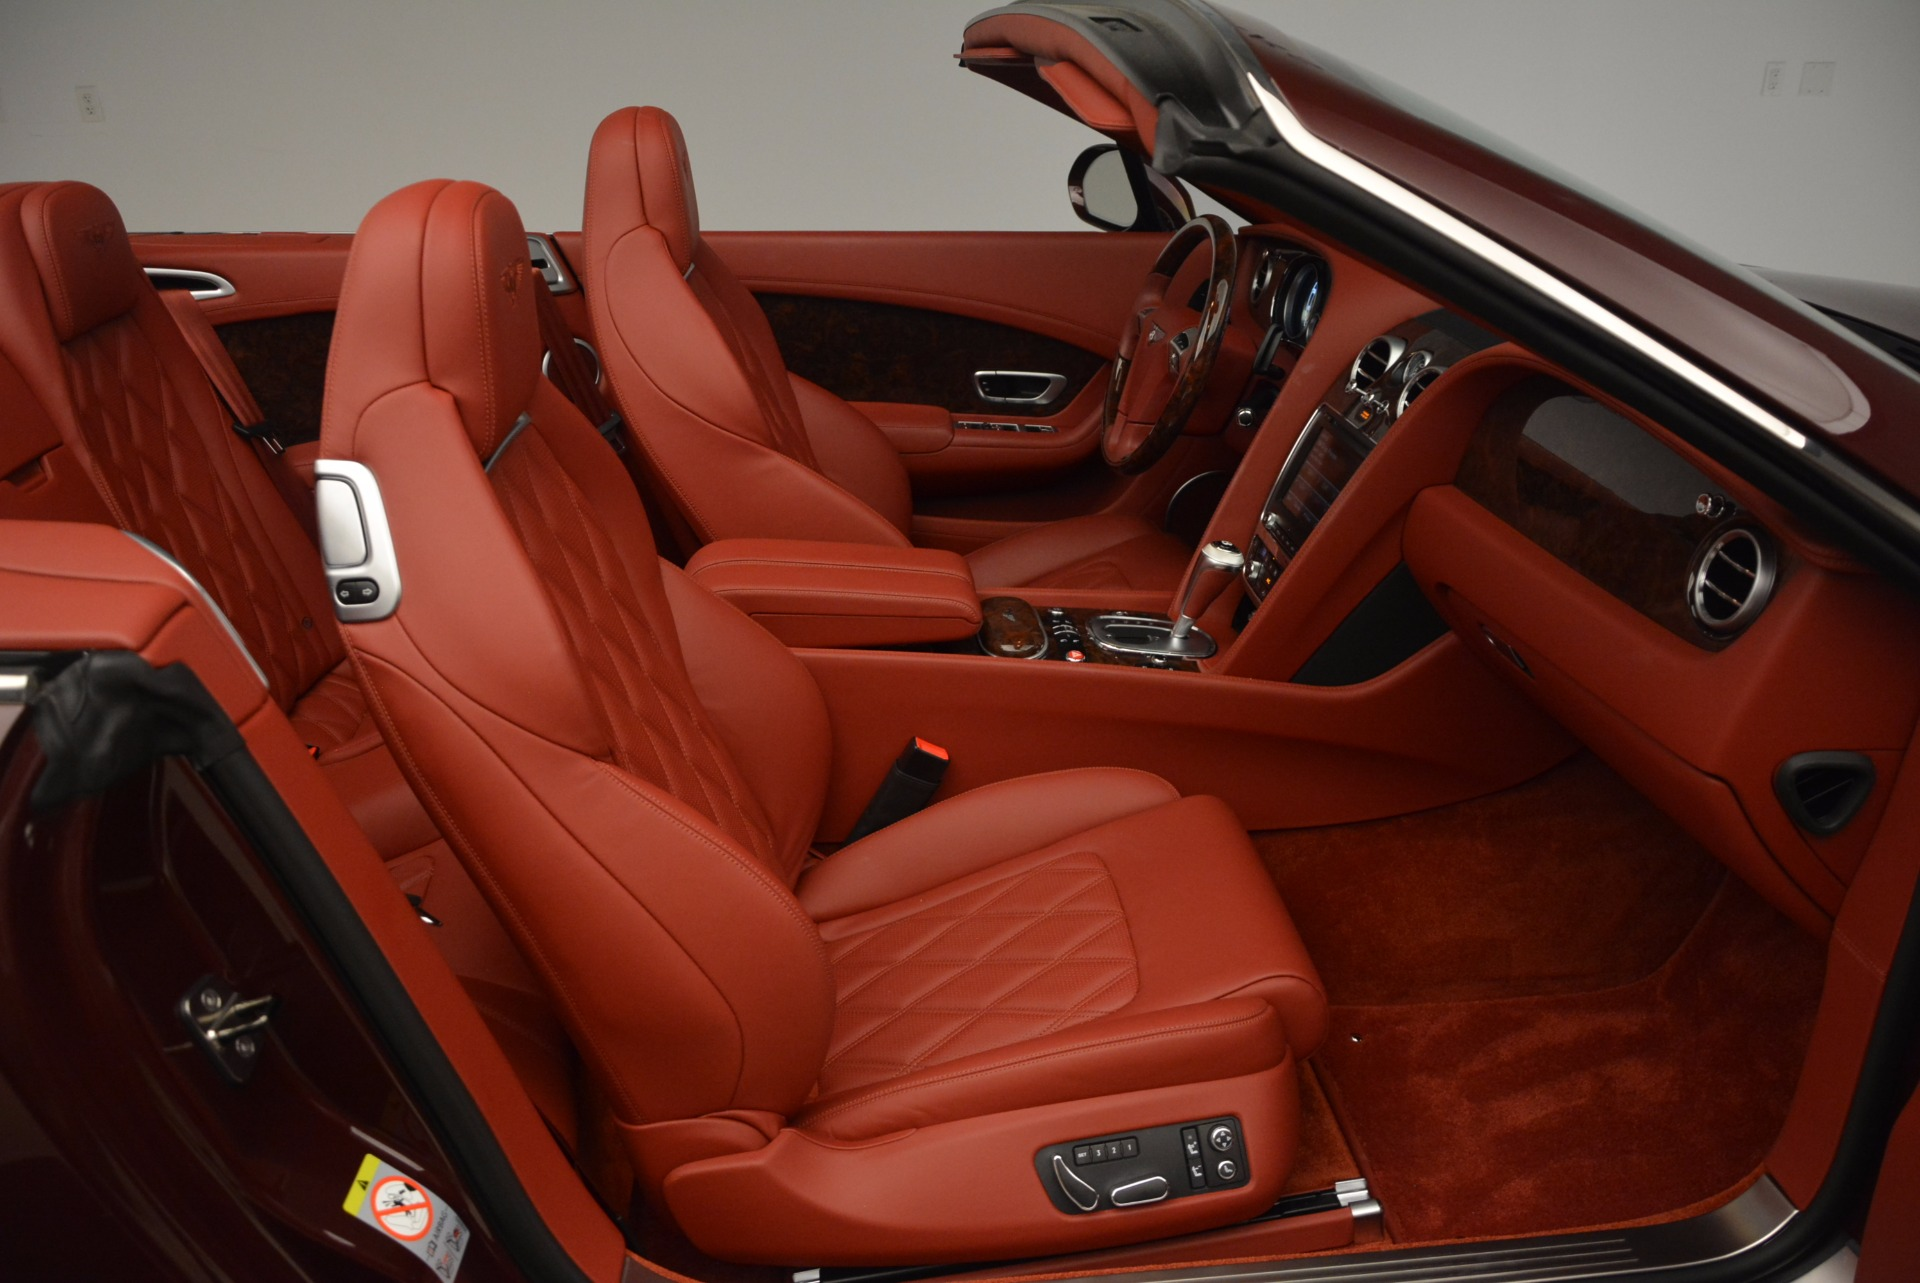 Used 2014 Bentley Continental GT W12 For Sale In Westport, CT 1516_p41